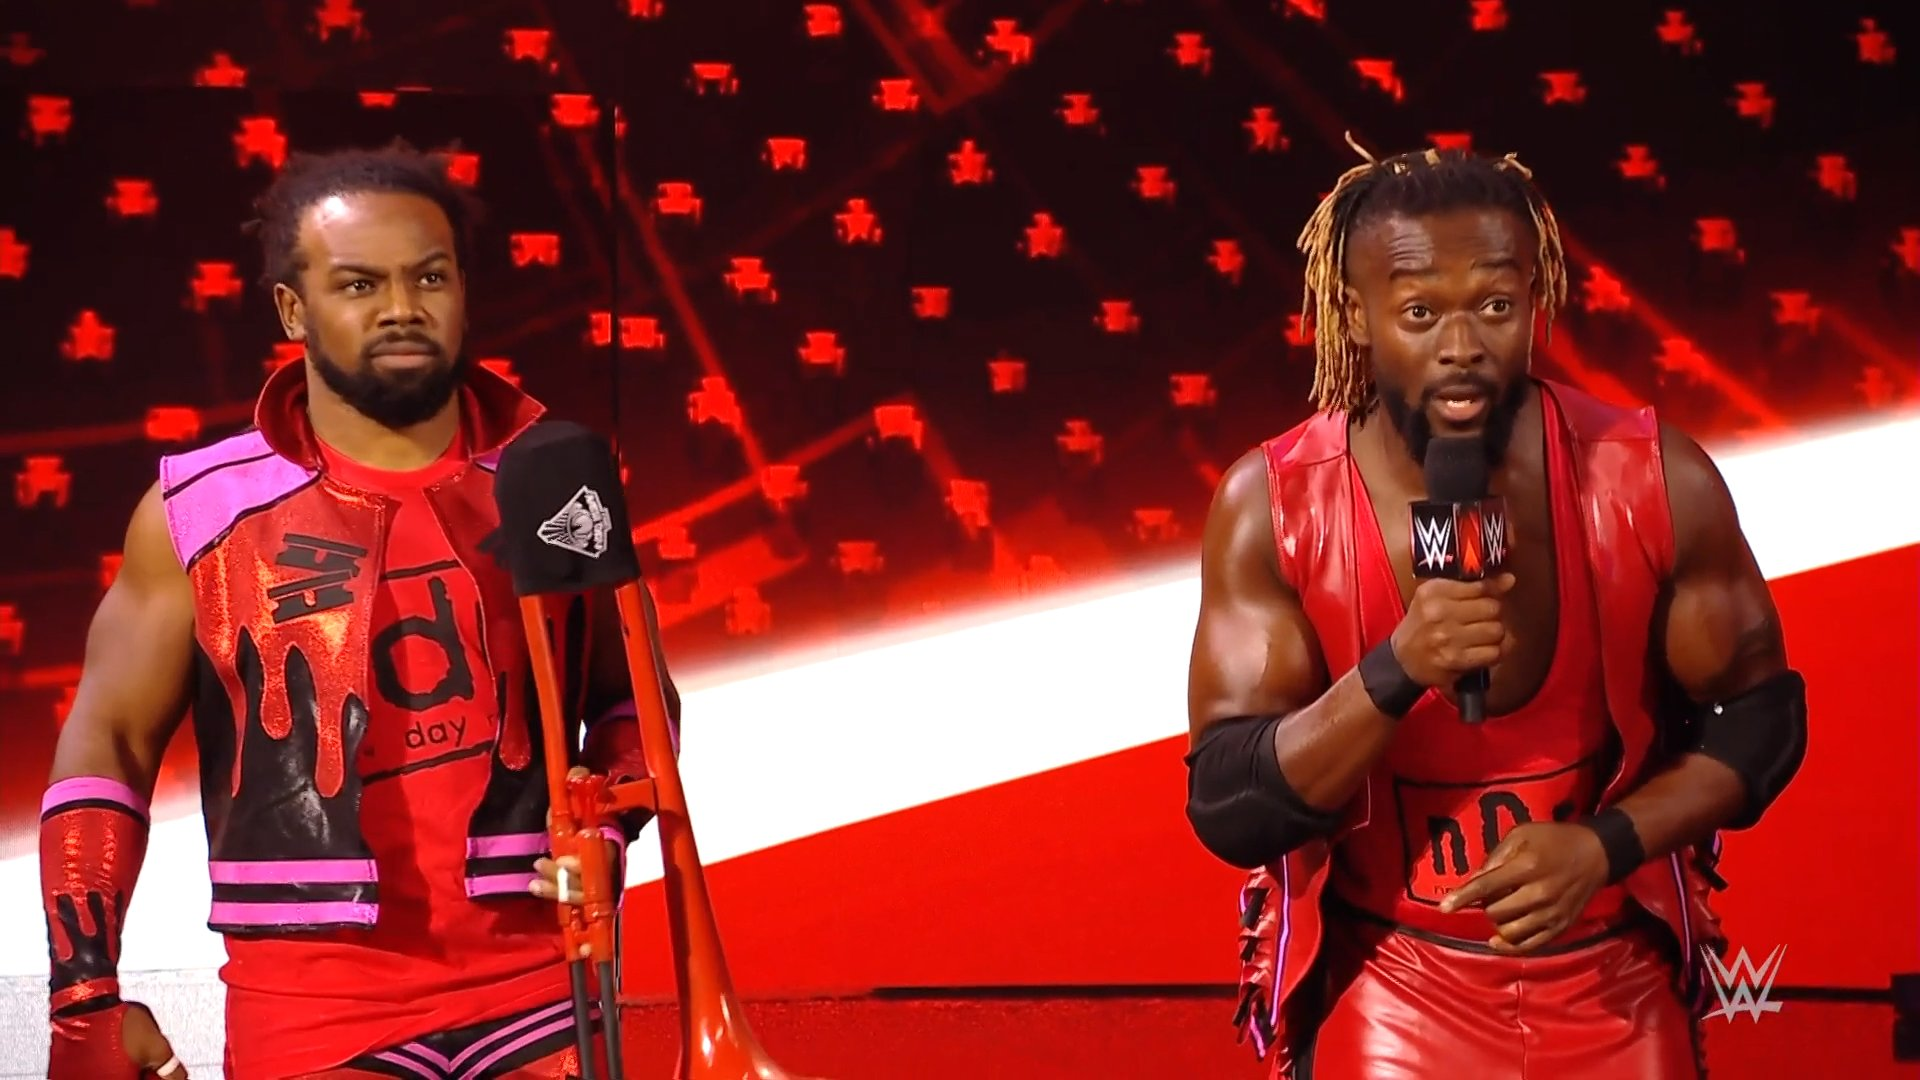 Kevin Nash Reacts To The New Day Paying Tribute To The Outsiders On WWE RAW